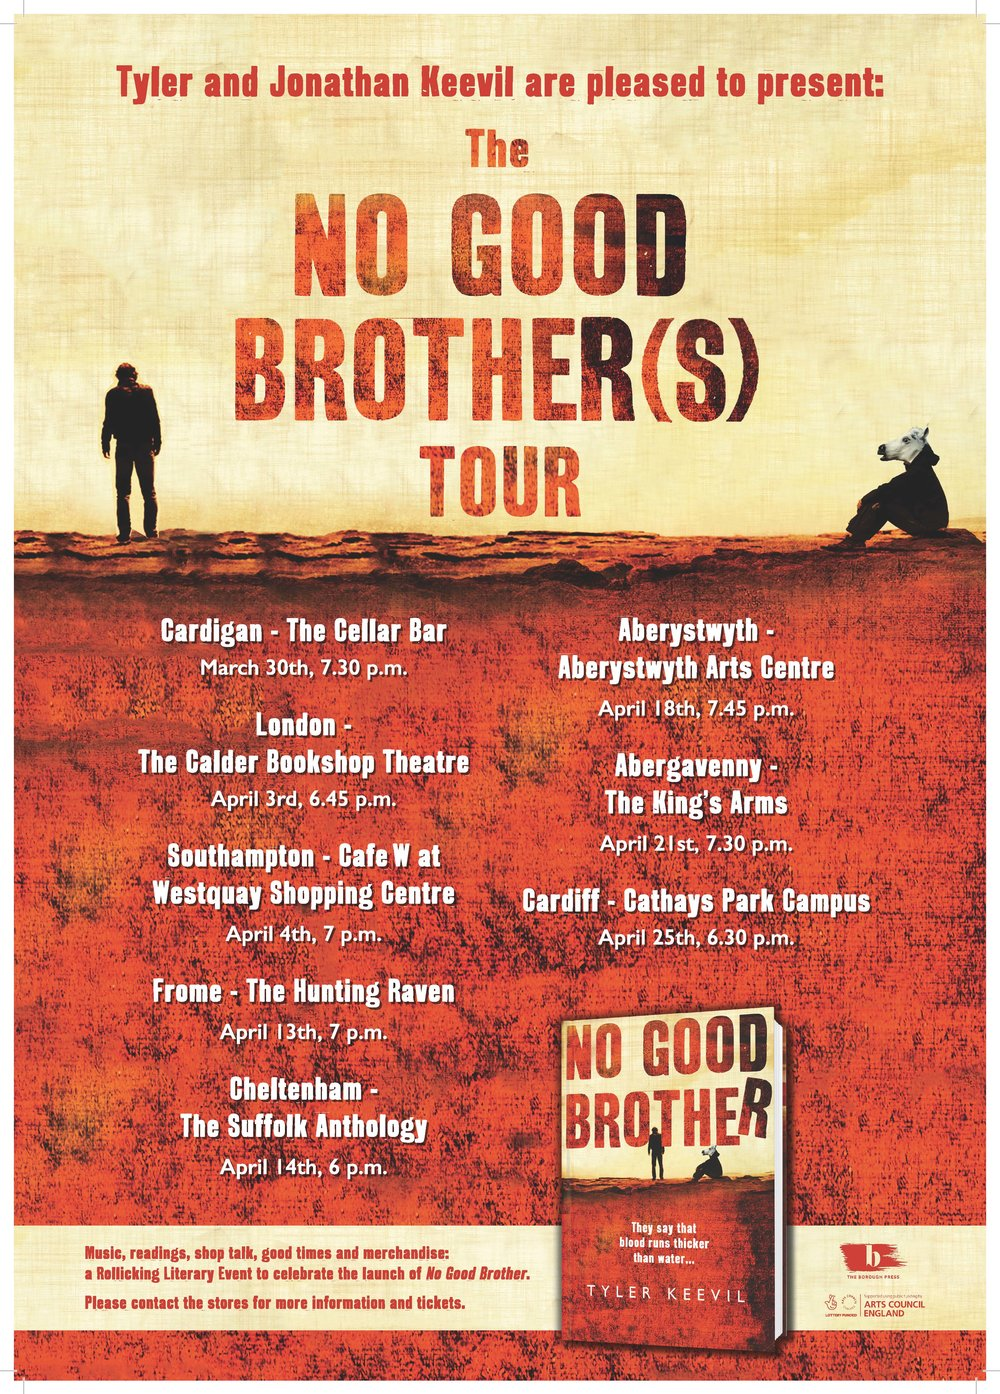 No Good Brother Tour Poster.jpg